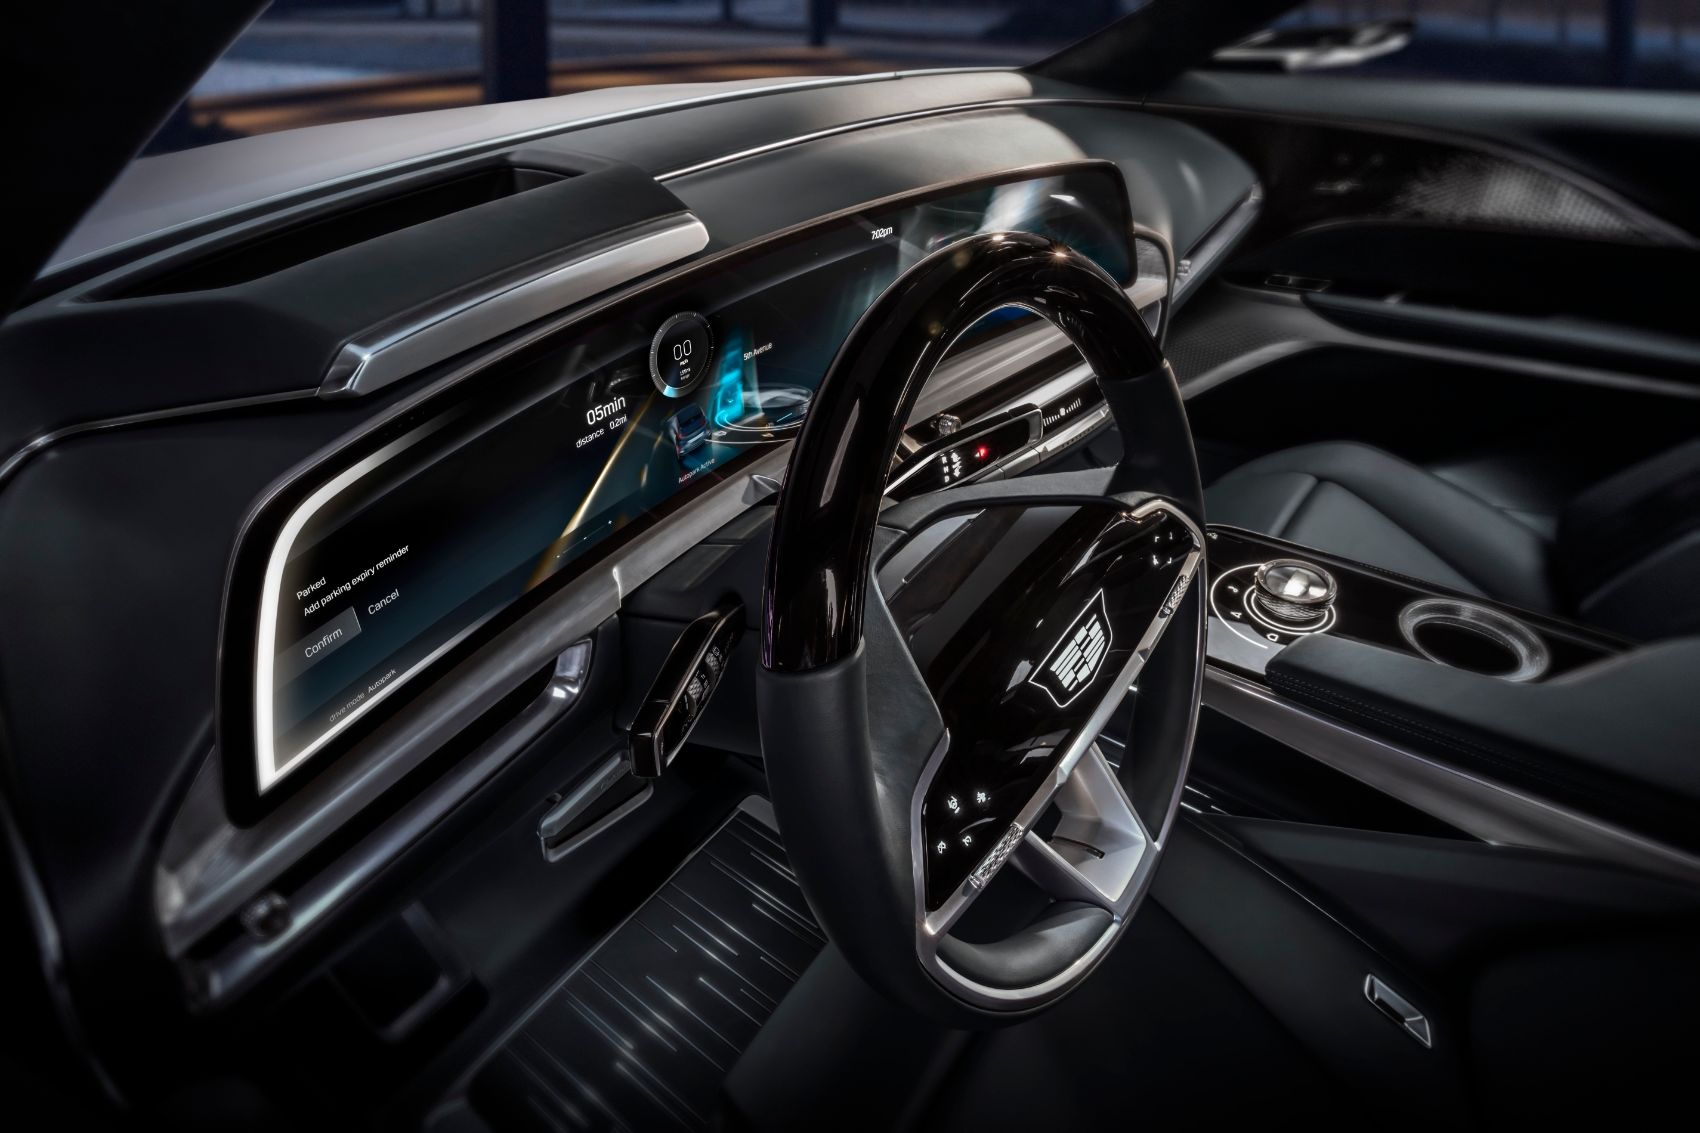 Cadillac Debuts New 33-Inch User Interface for Next-Generation Driver Experiences